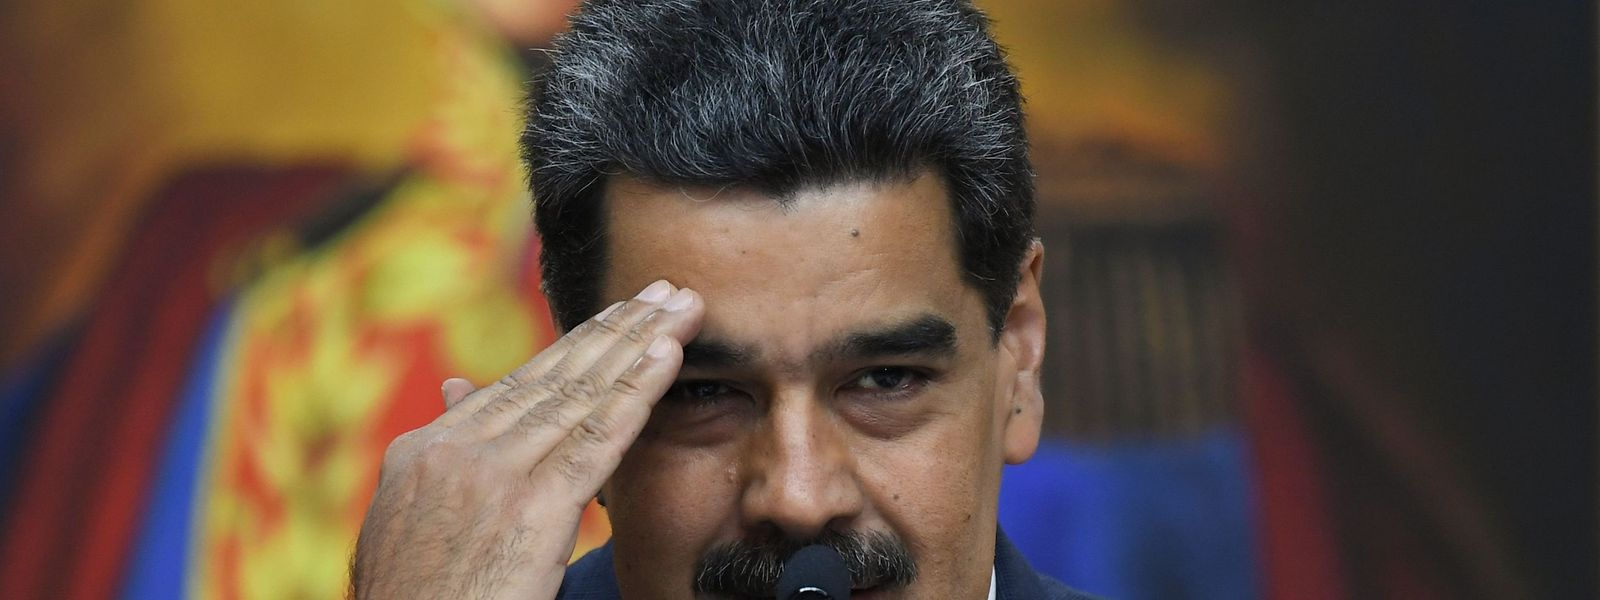 "(FILES) In this file photo taken on February 14, 2020 Venezuela's President Nicolas Maduro gestures during a press conference with members of the foreign media at Miraflores palace in Caracas. - The US Justice Department announced the indictment of Venezuelan President Nicolas Maduro on March 26, 2020 for ""narco-terrorism"" and offered $15 million for information leading to his capture. (Photo by YURI CORTEZ / AFP)"